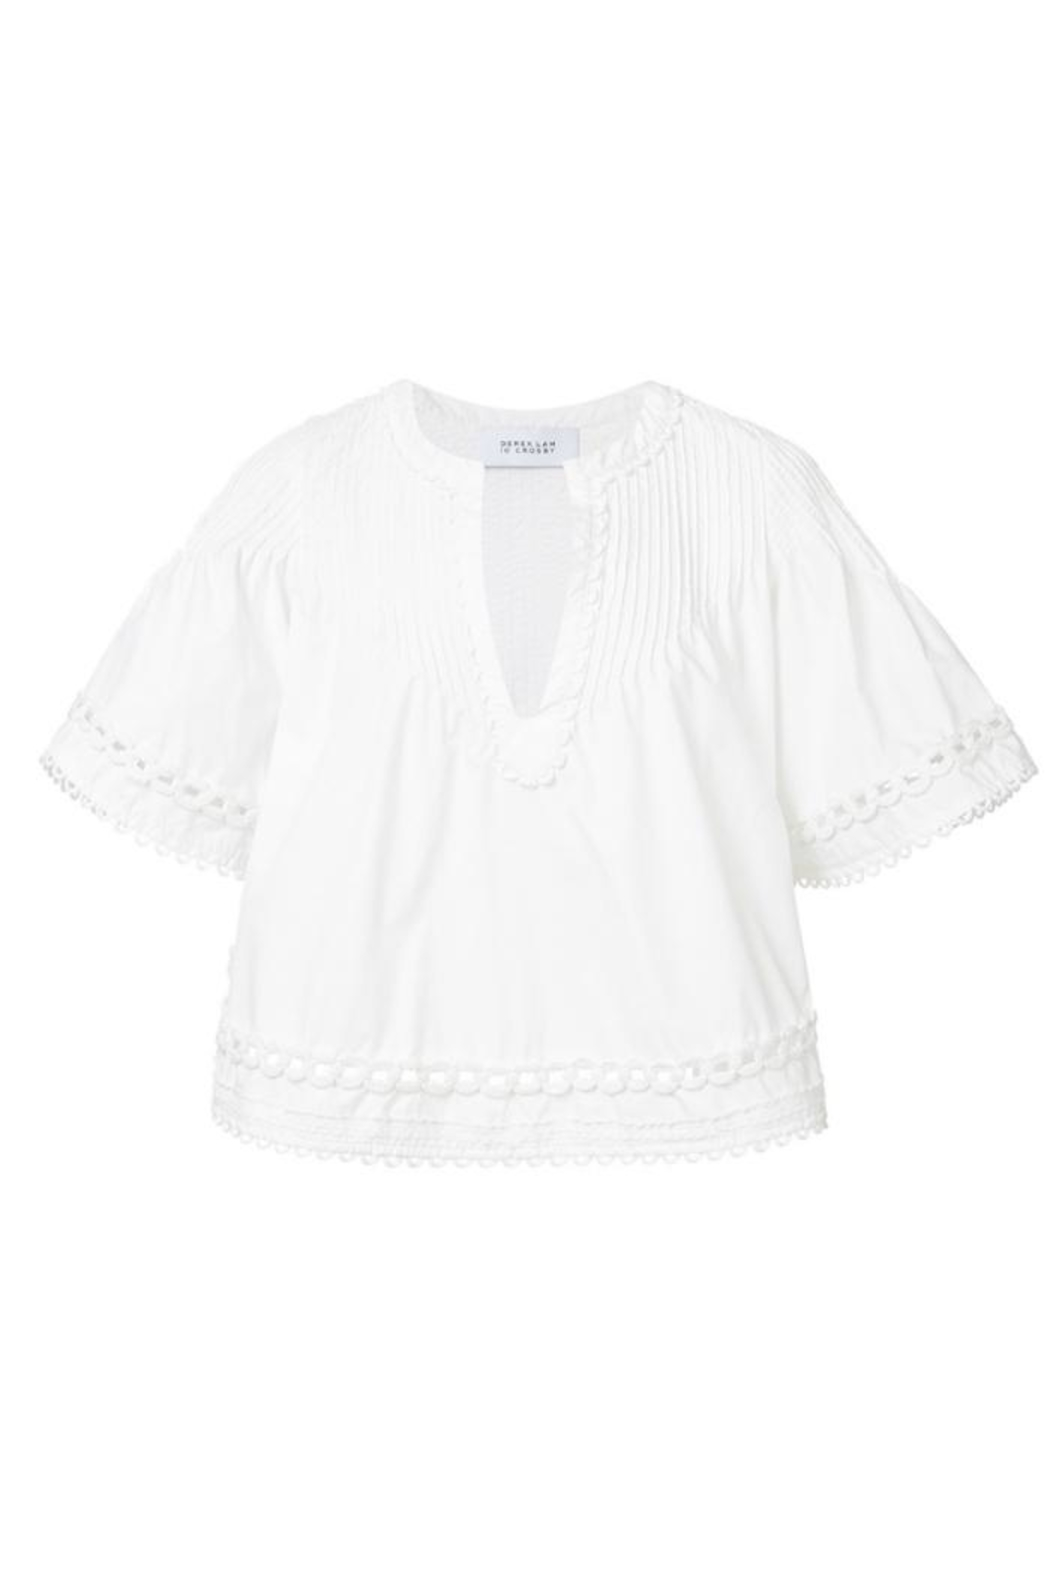 Derek Lam 10 Crosby Embroidered Pintuck Top - Back Cropped Image